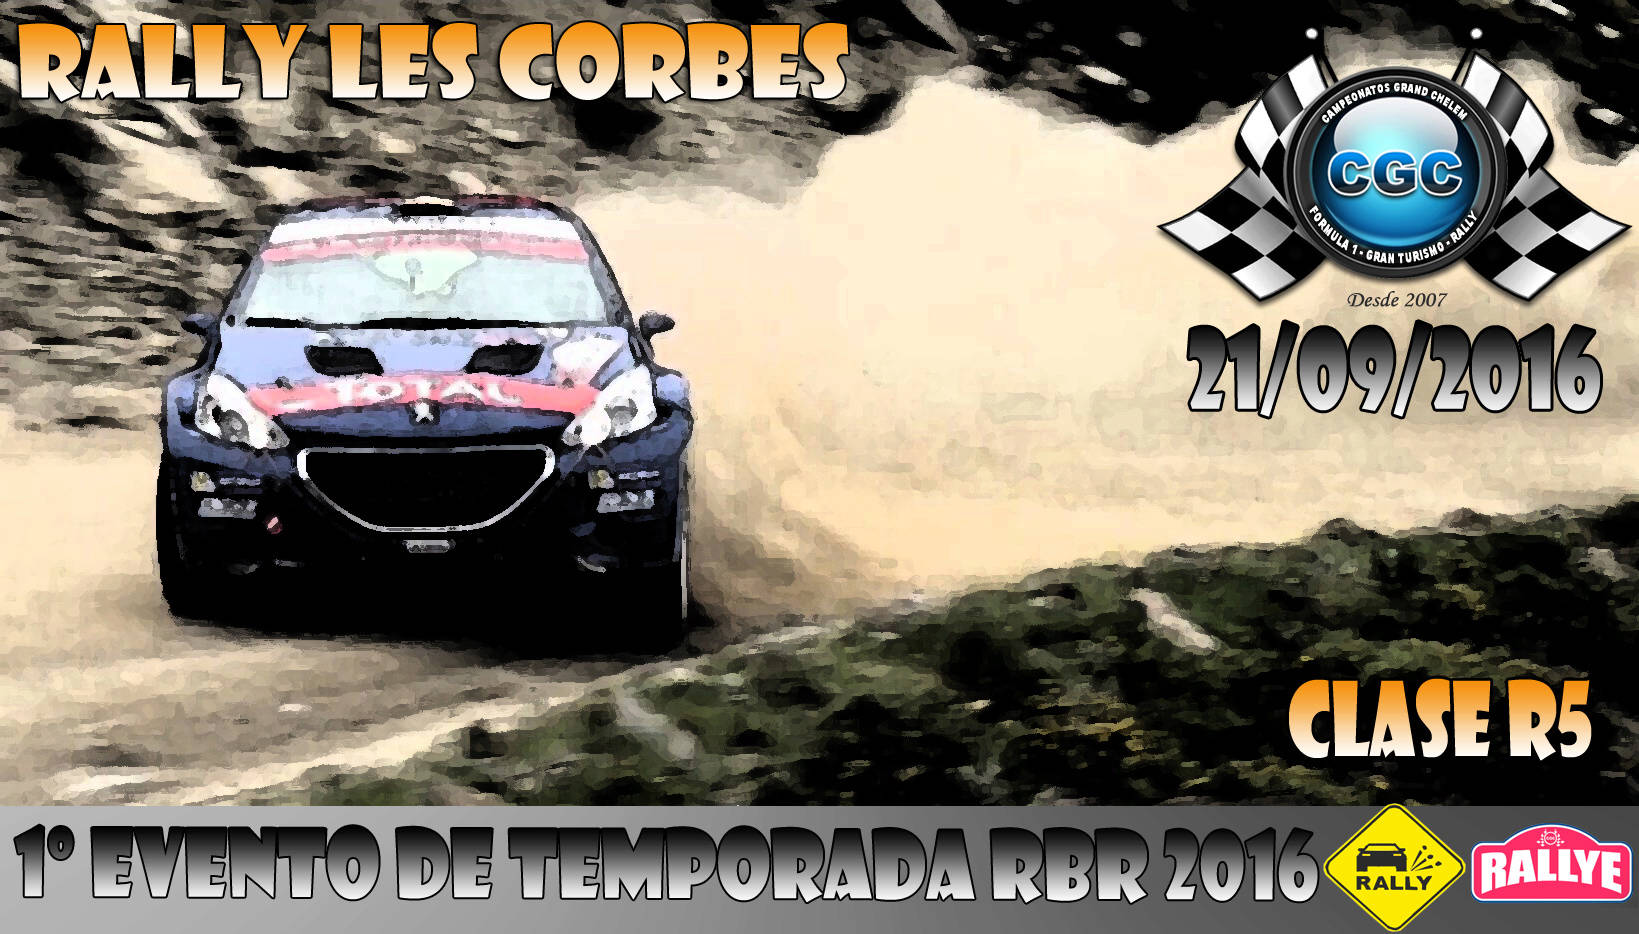 1º evento de Temporada RBR 2016 1c_eve12